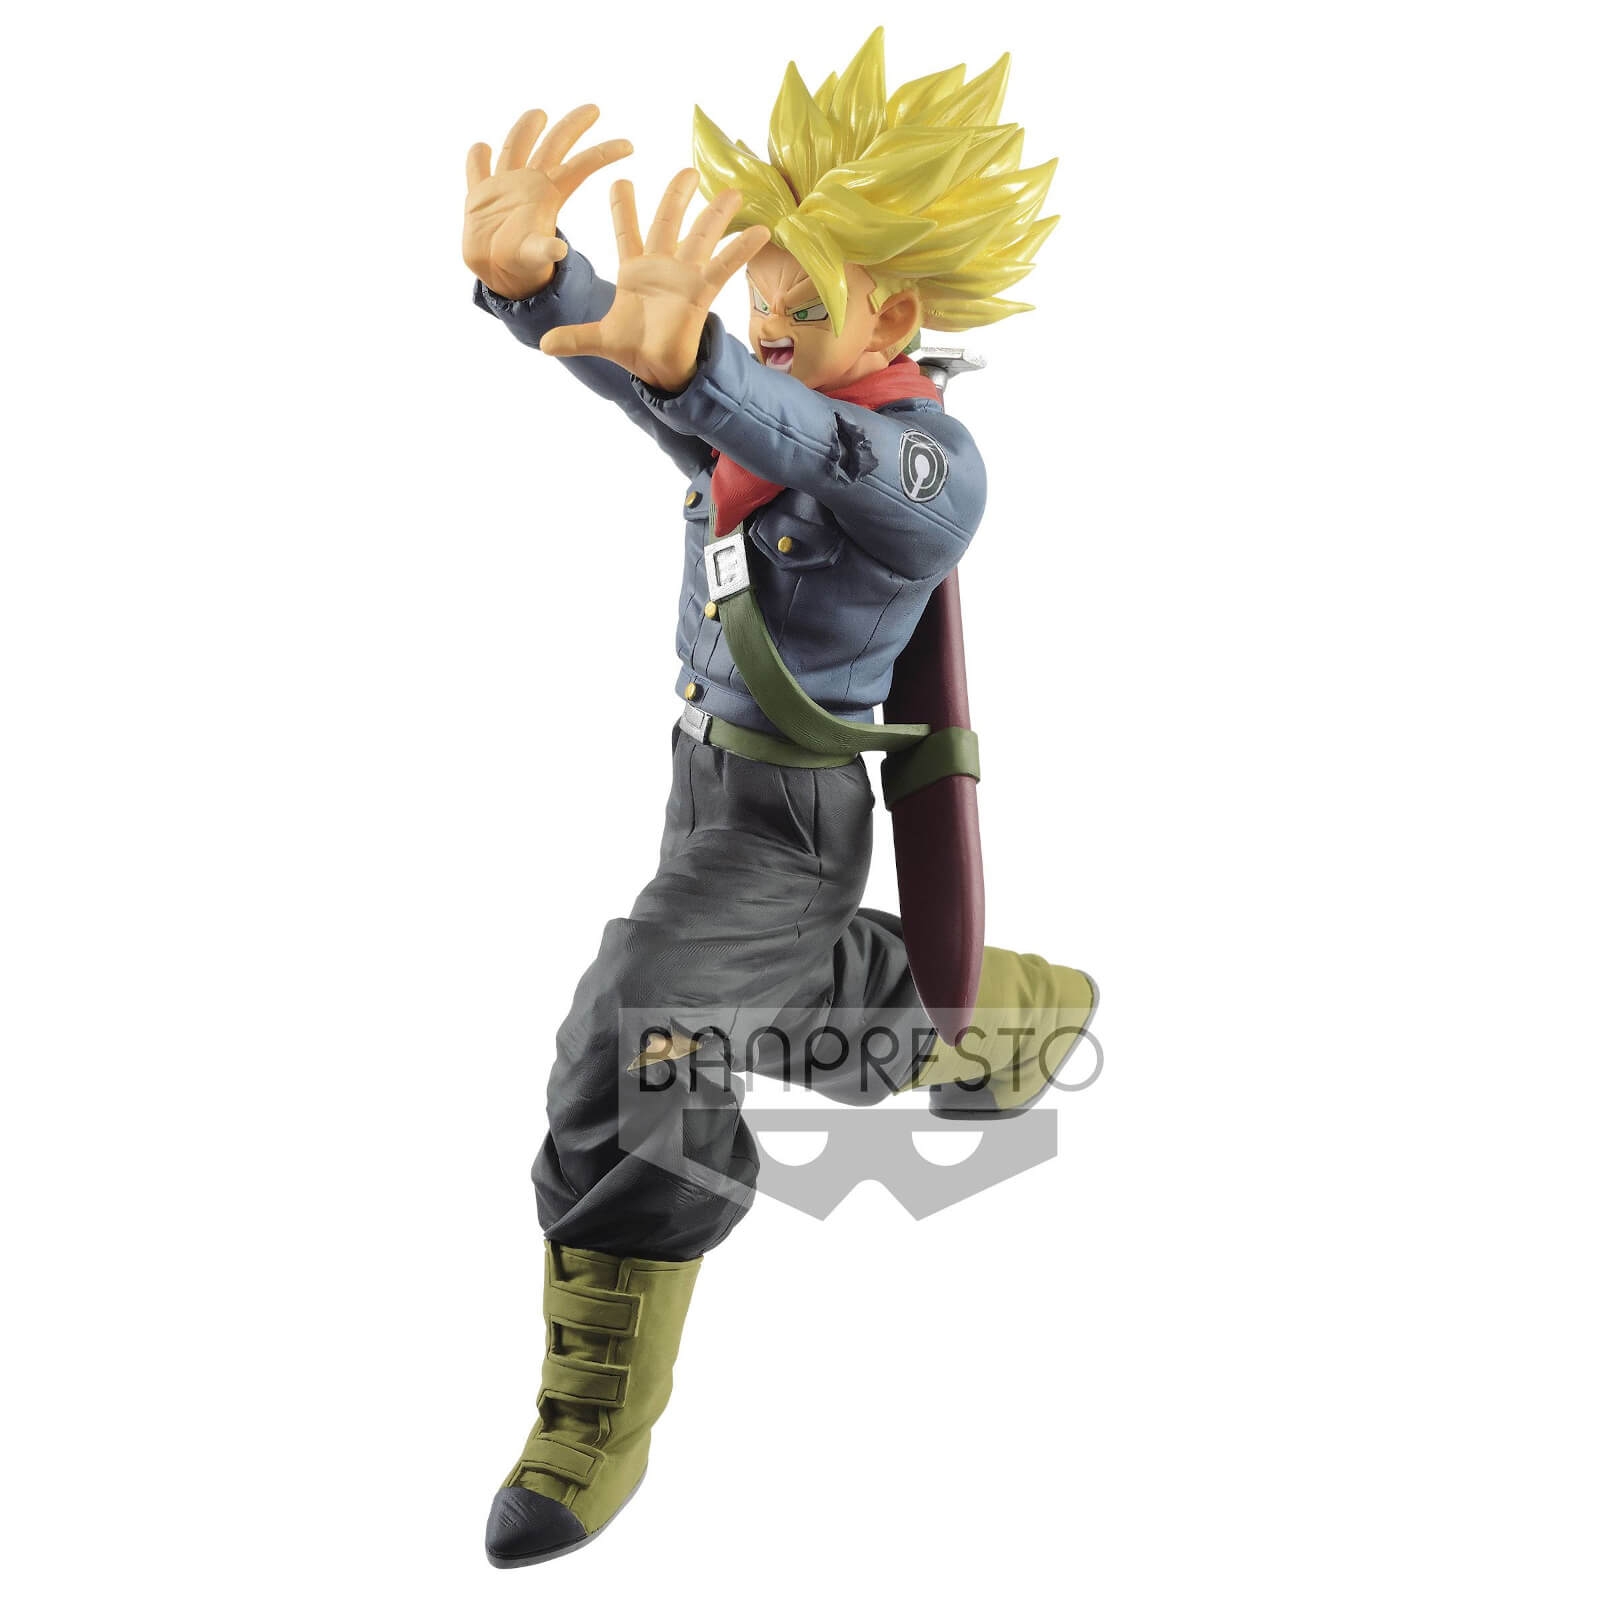 Image of Banpresto Dragon Ball Super Future Trunks Galick Gun Statue